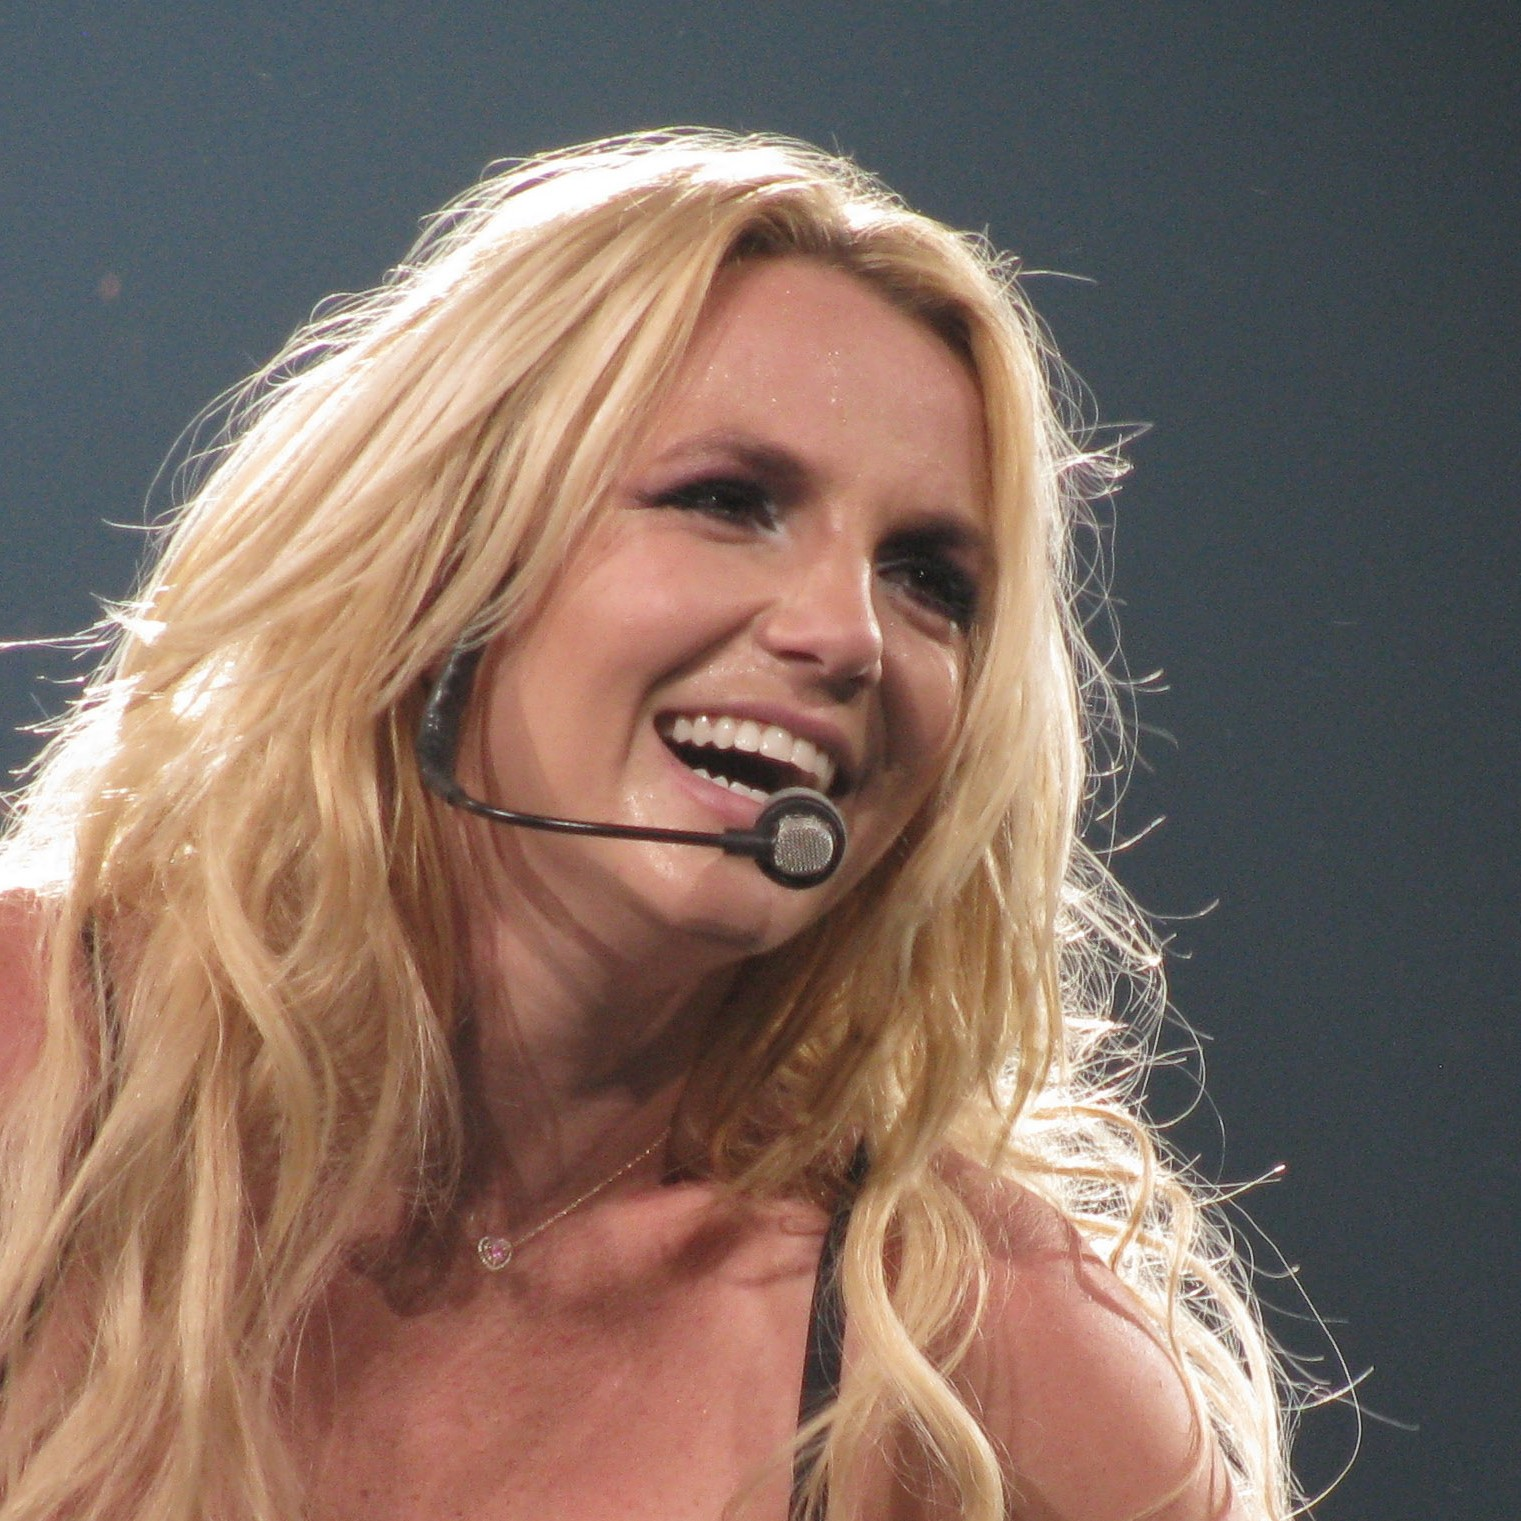 Britney Spears Leaked Photos photo 25